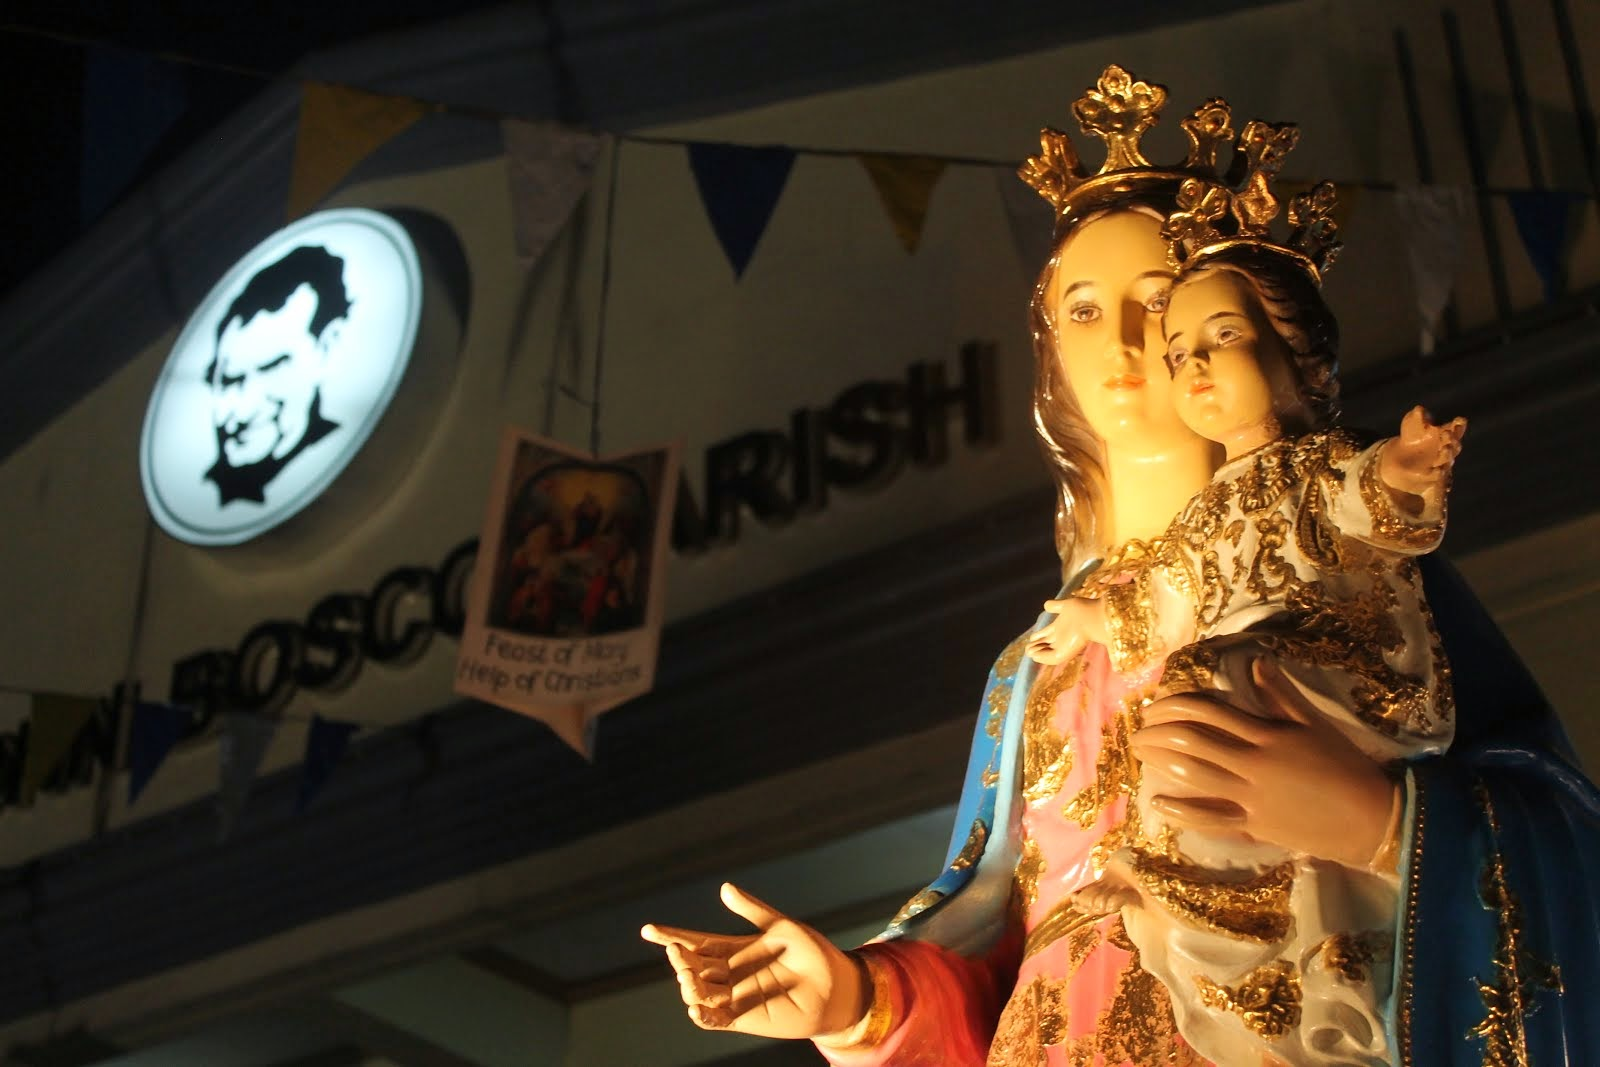 St. John Bosco Parish Tondo is under the protection of Mary Help of Christians